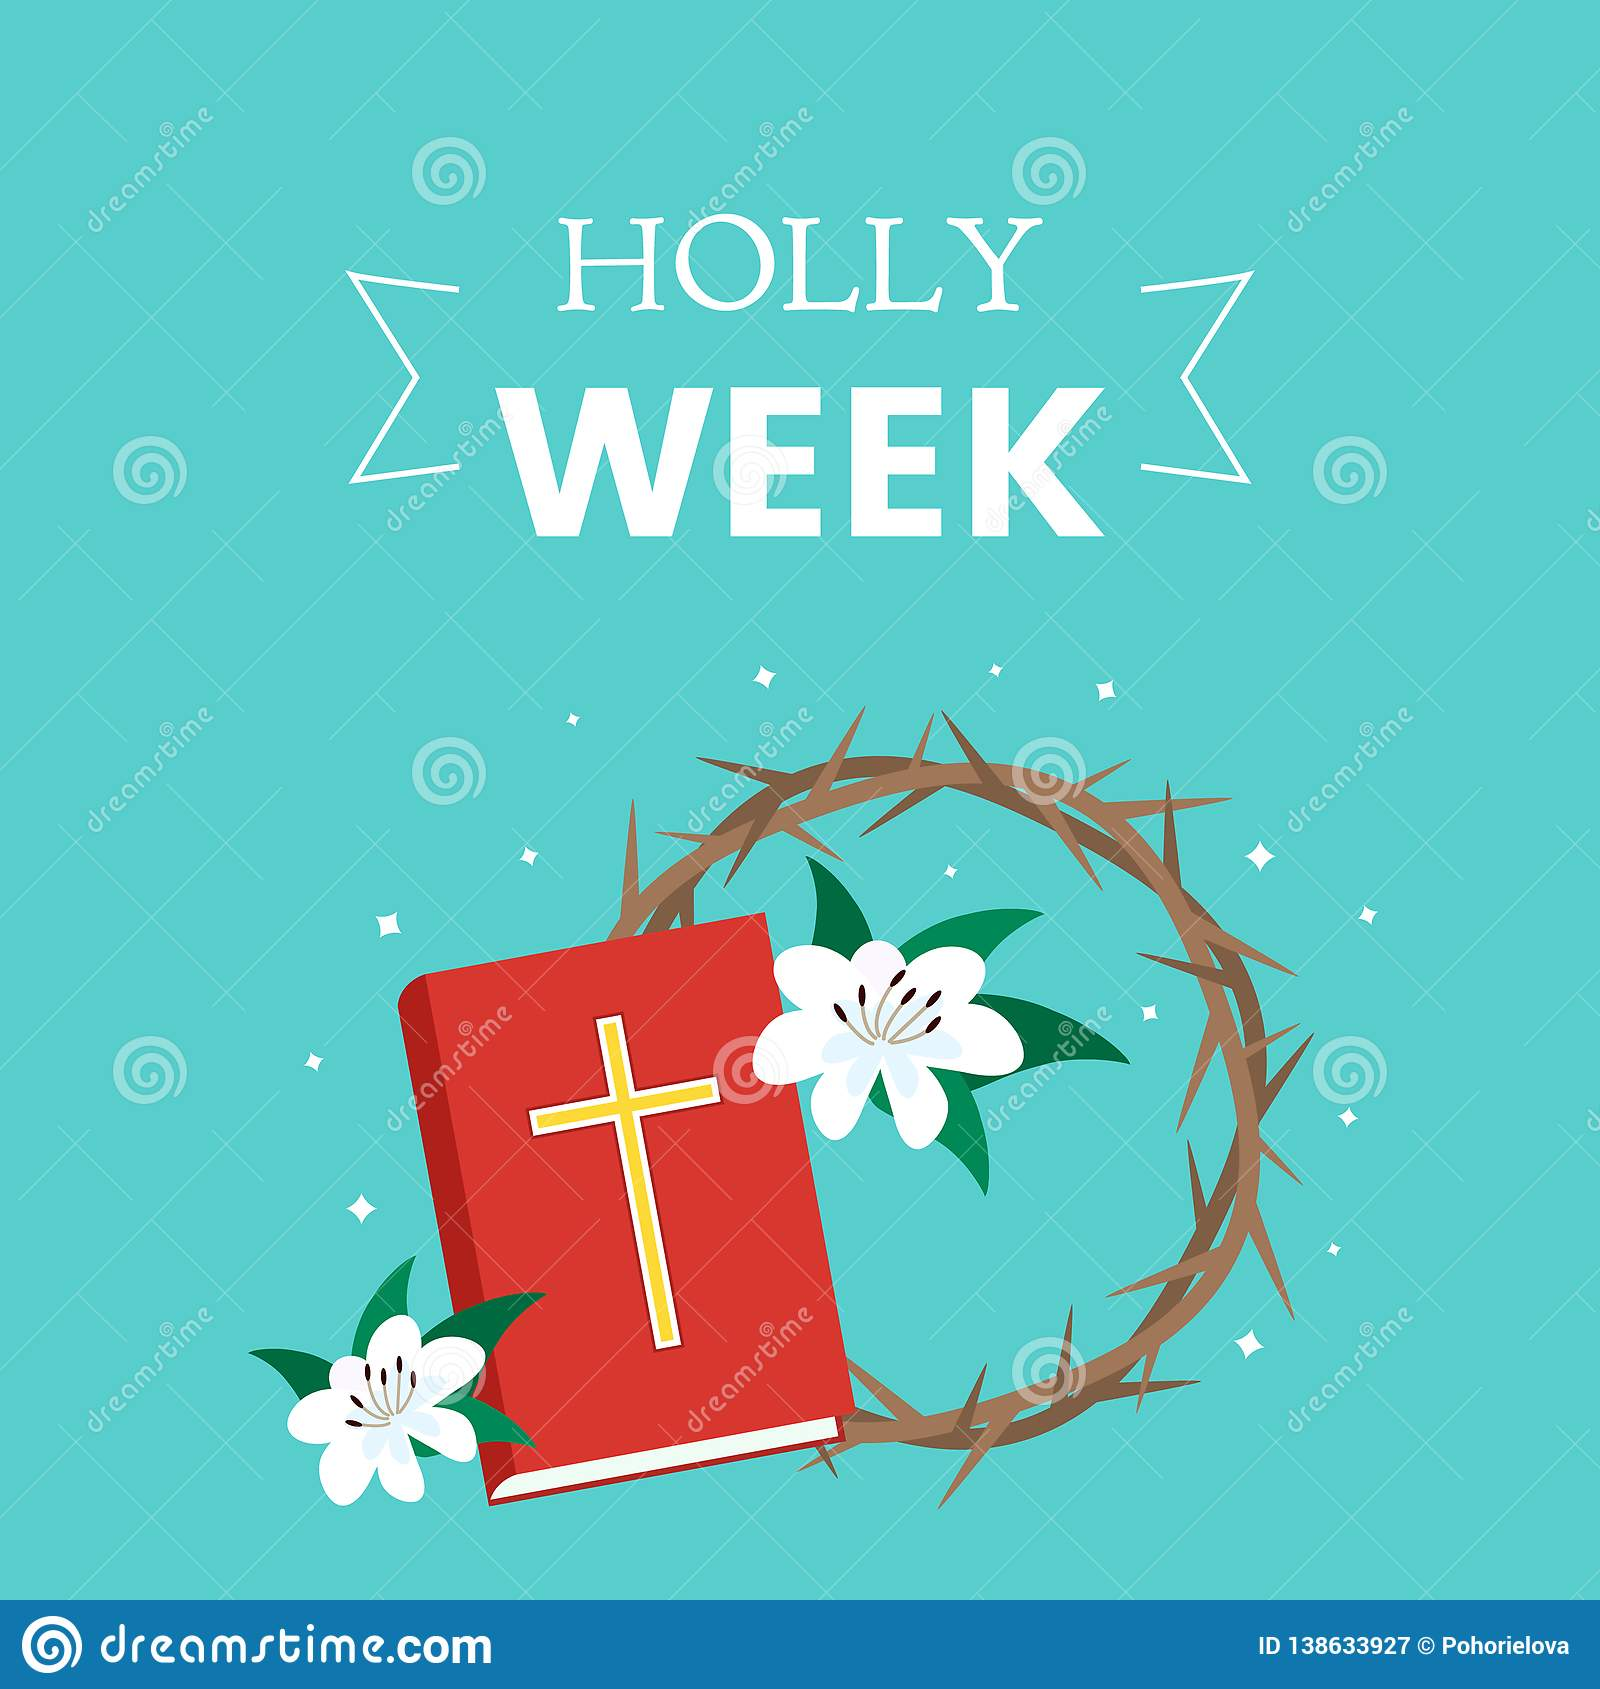 Download Postcard Holy Week Before Easter, Lent And Palm Sunday ...